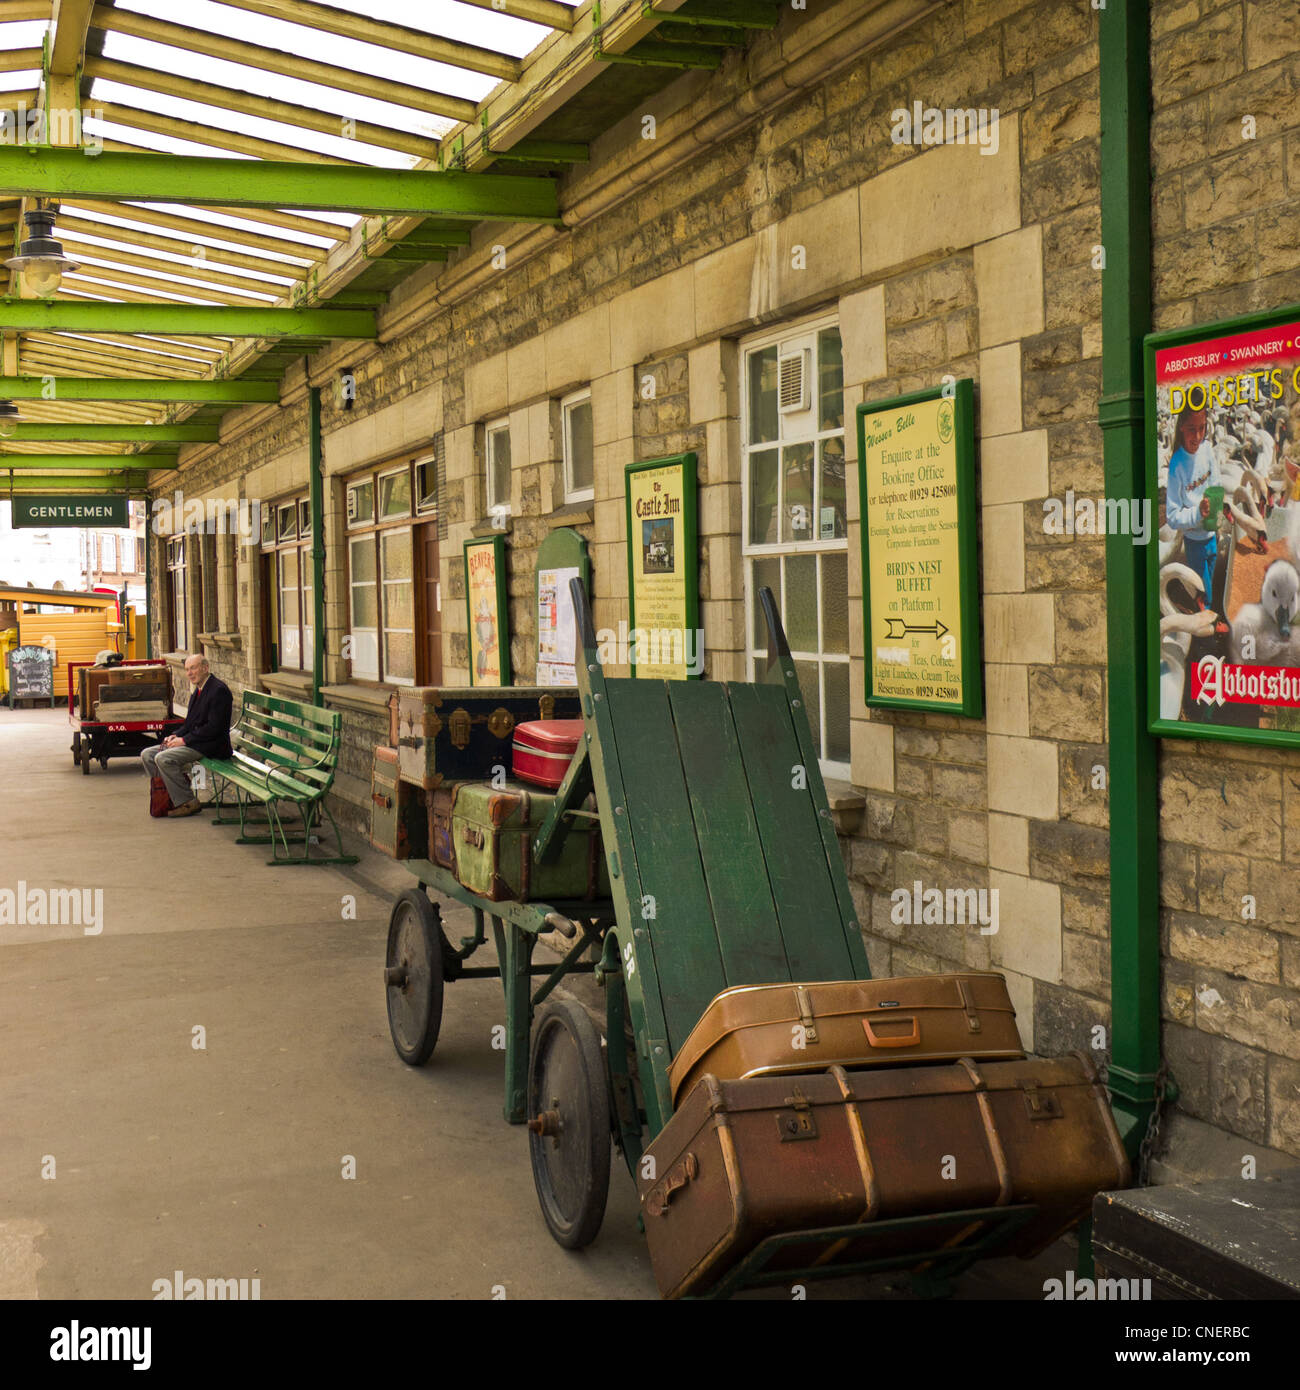 Platform At Swanage Railway Station In Dorset Showing Vintage Fittings And Porters Trolley With Period Luggage Cases